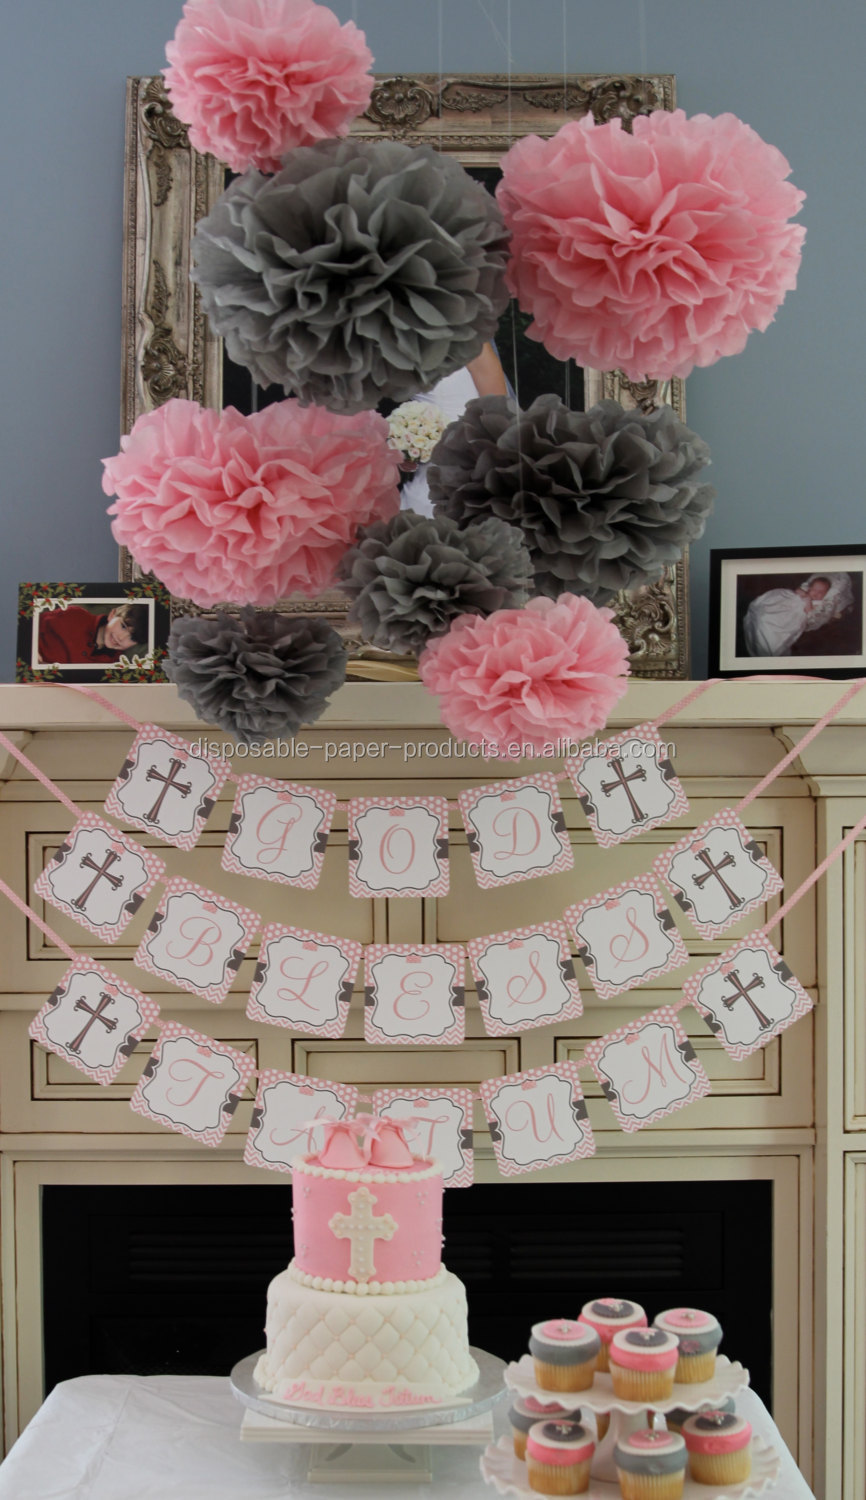 Pink Theme Party Ideas Tissue Paper Pom Poms Honeycomb